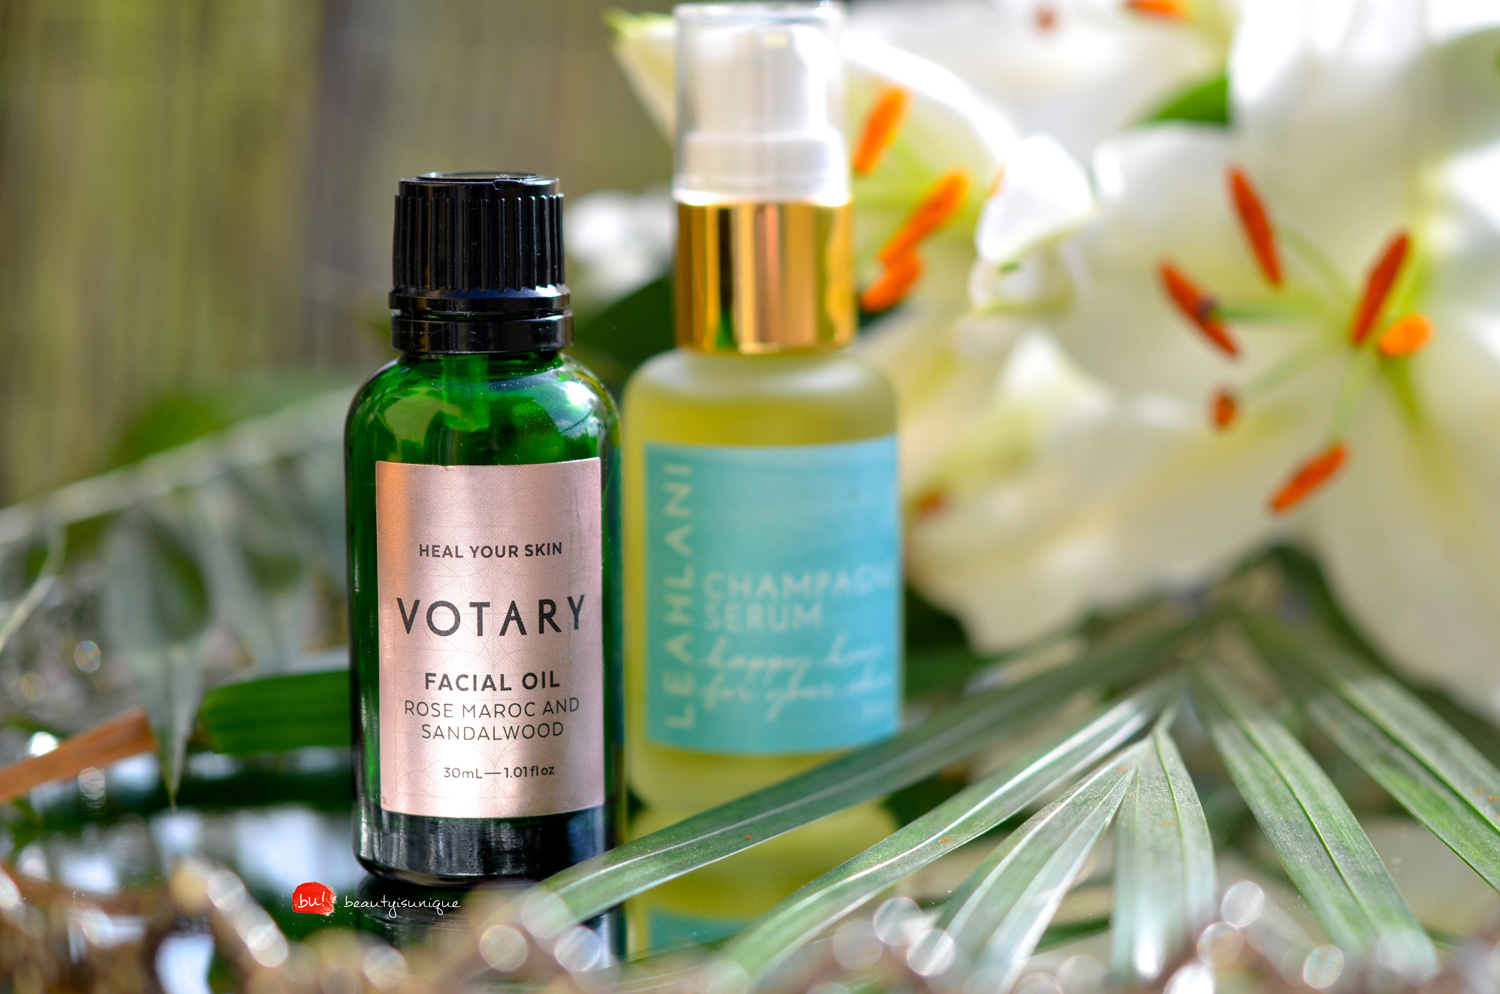 votary-rose-maroc-and-sandalwood-facial-oil-review